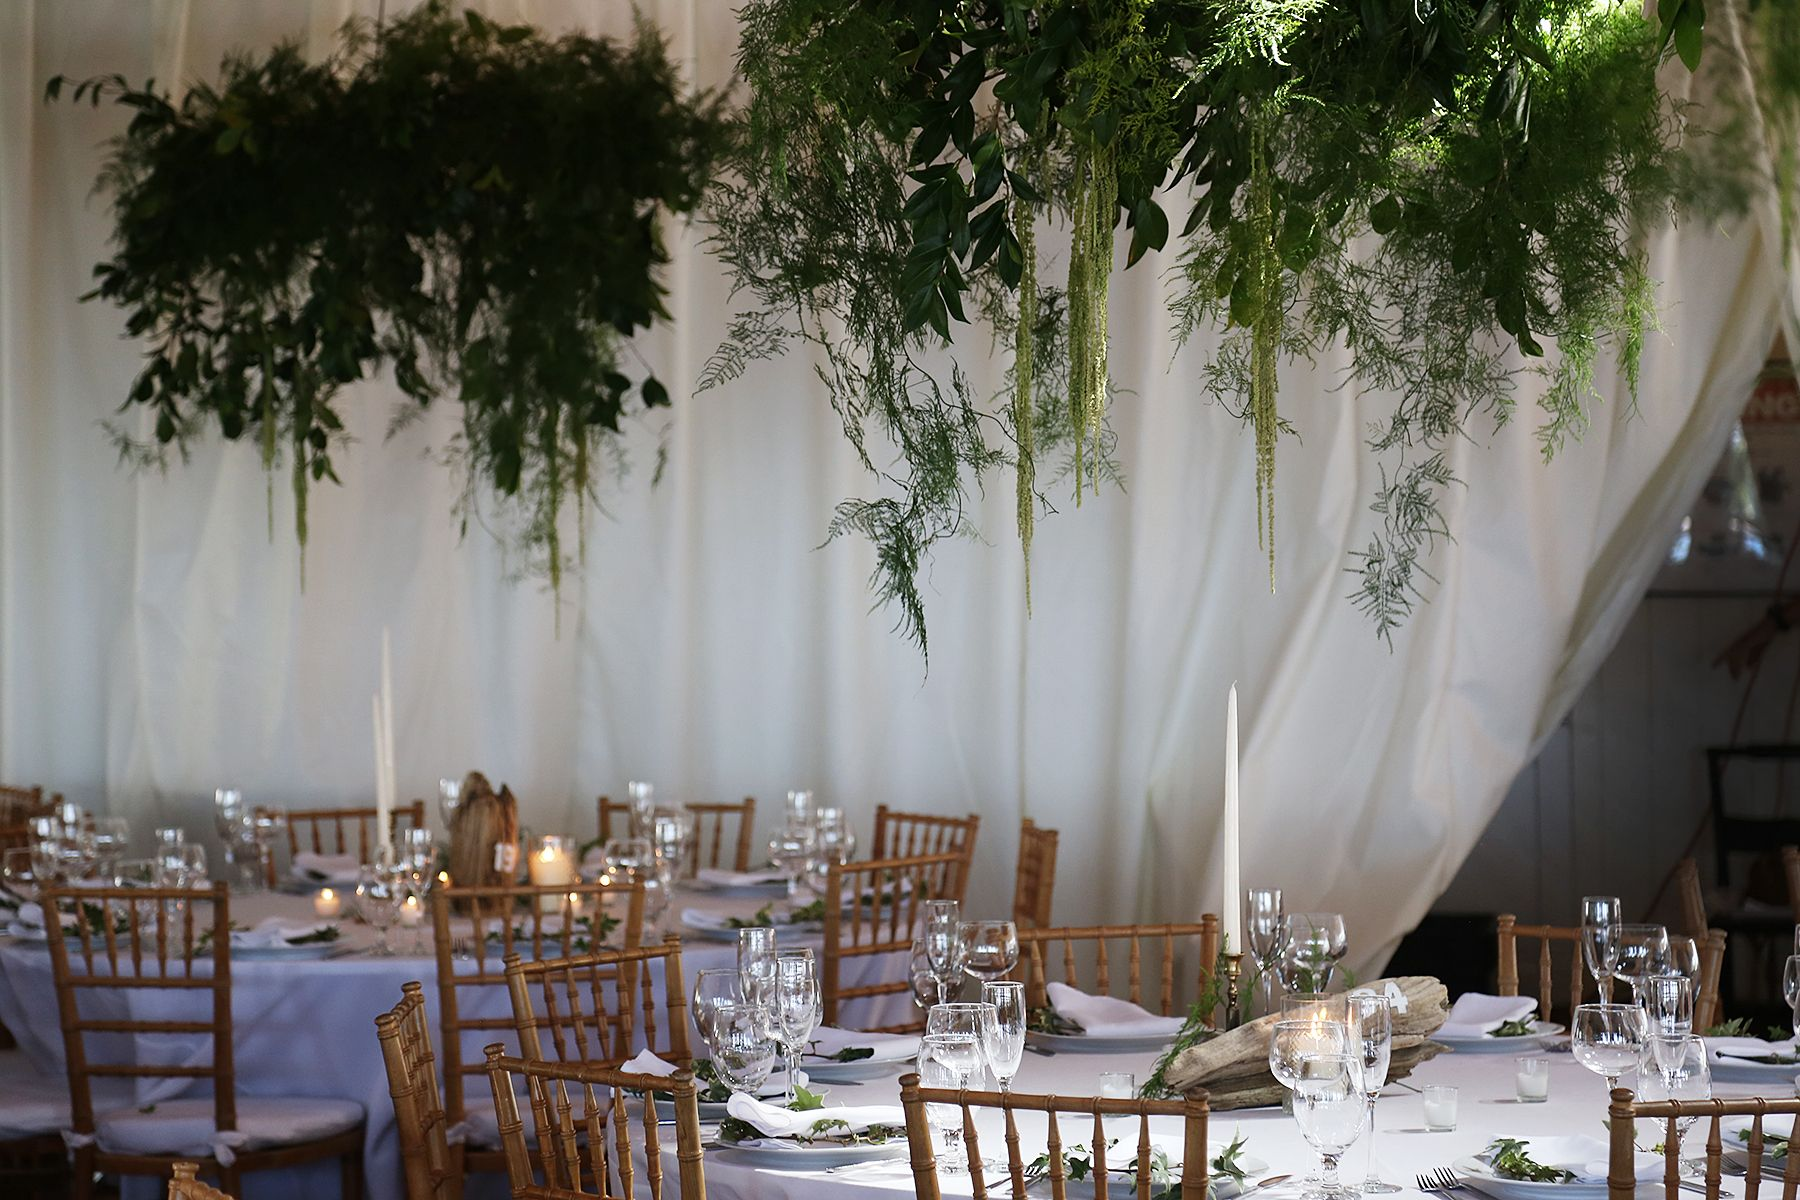 example of green hanging from tent - can we fake or real whichever is cheaper - mw  Weddings   Putnam & Putnam